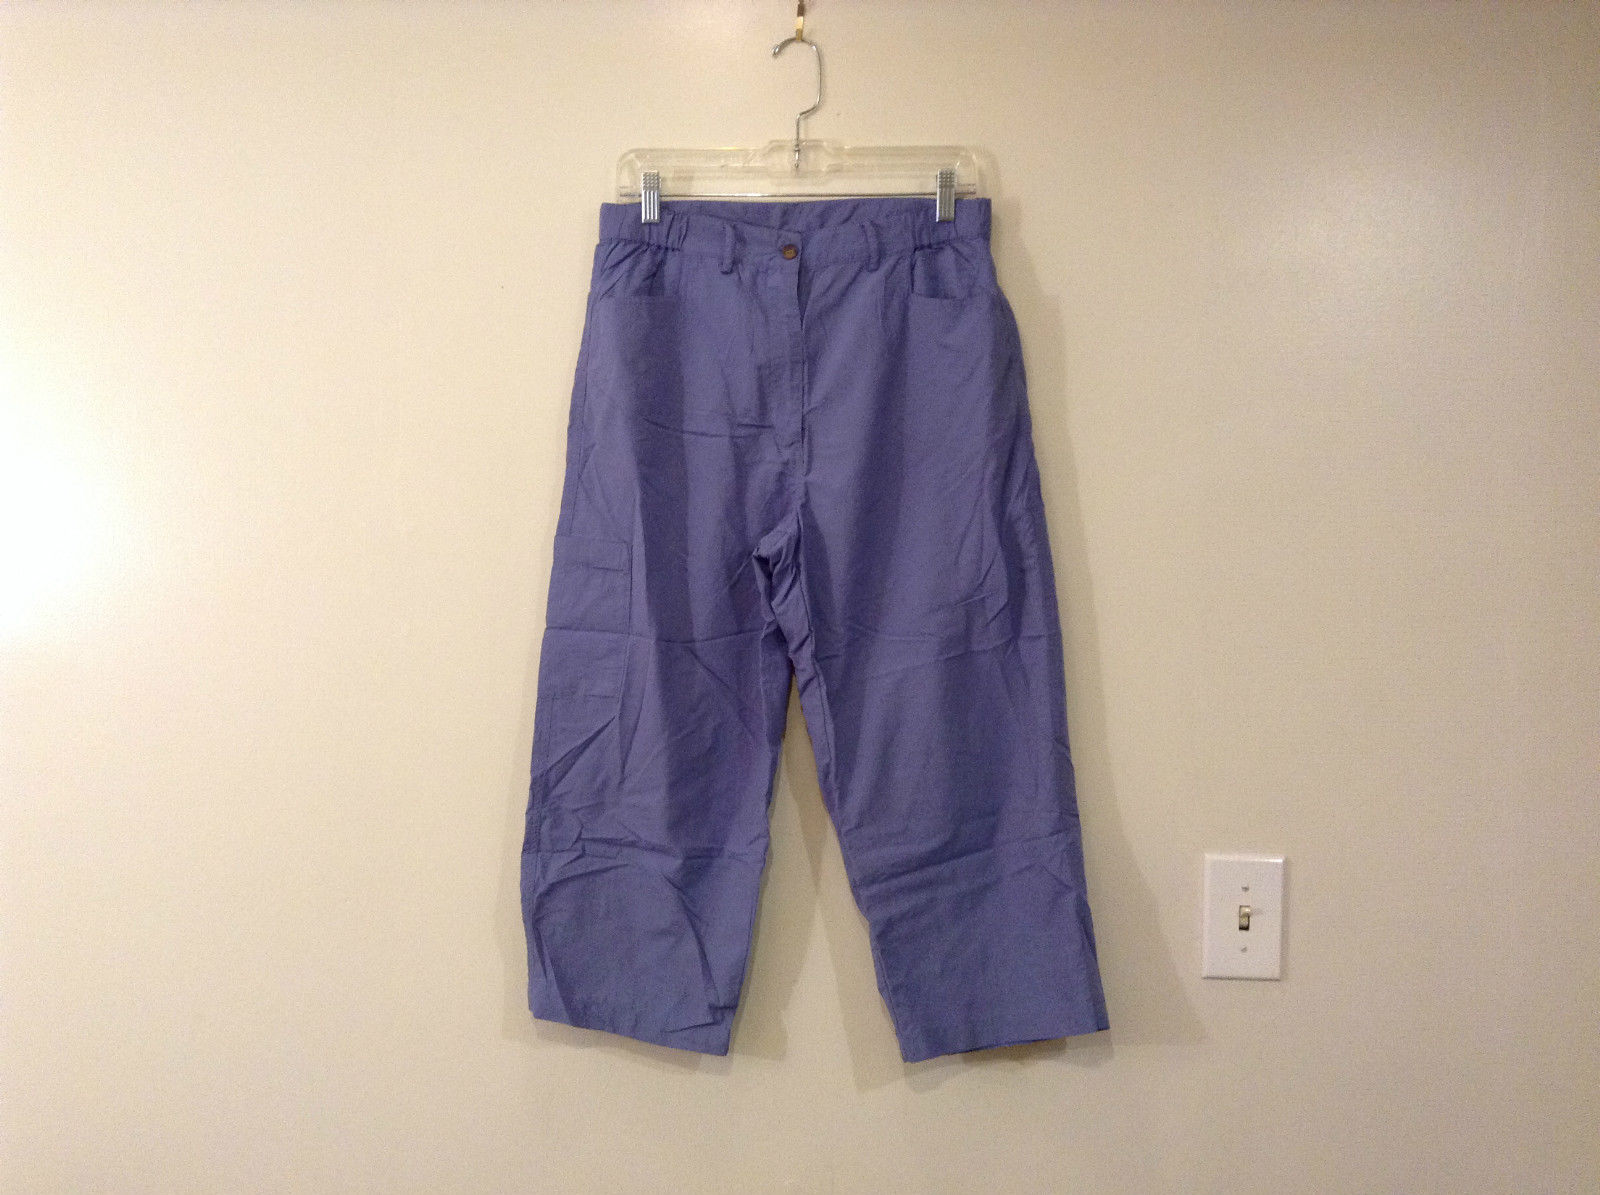 Early Winter Blue Capri Pants Front Pocket Size Medium Elastic Inserts on Waist